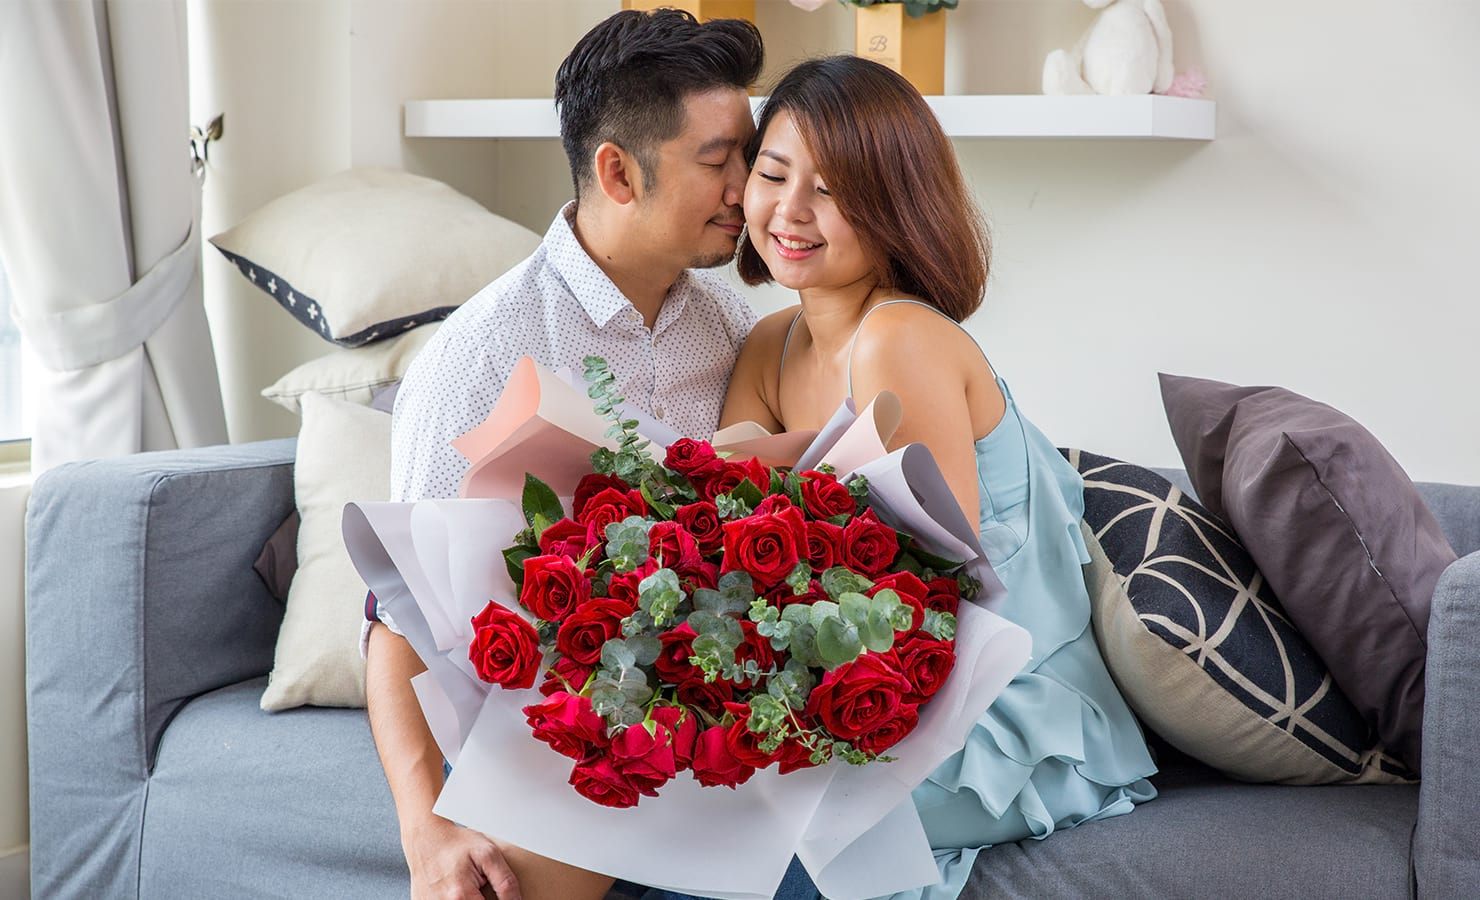 bloomthis-qixi-festival-gift-guide-2021-17-romantic-couple-with-red-roses